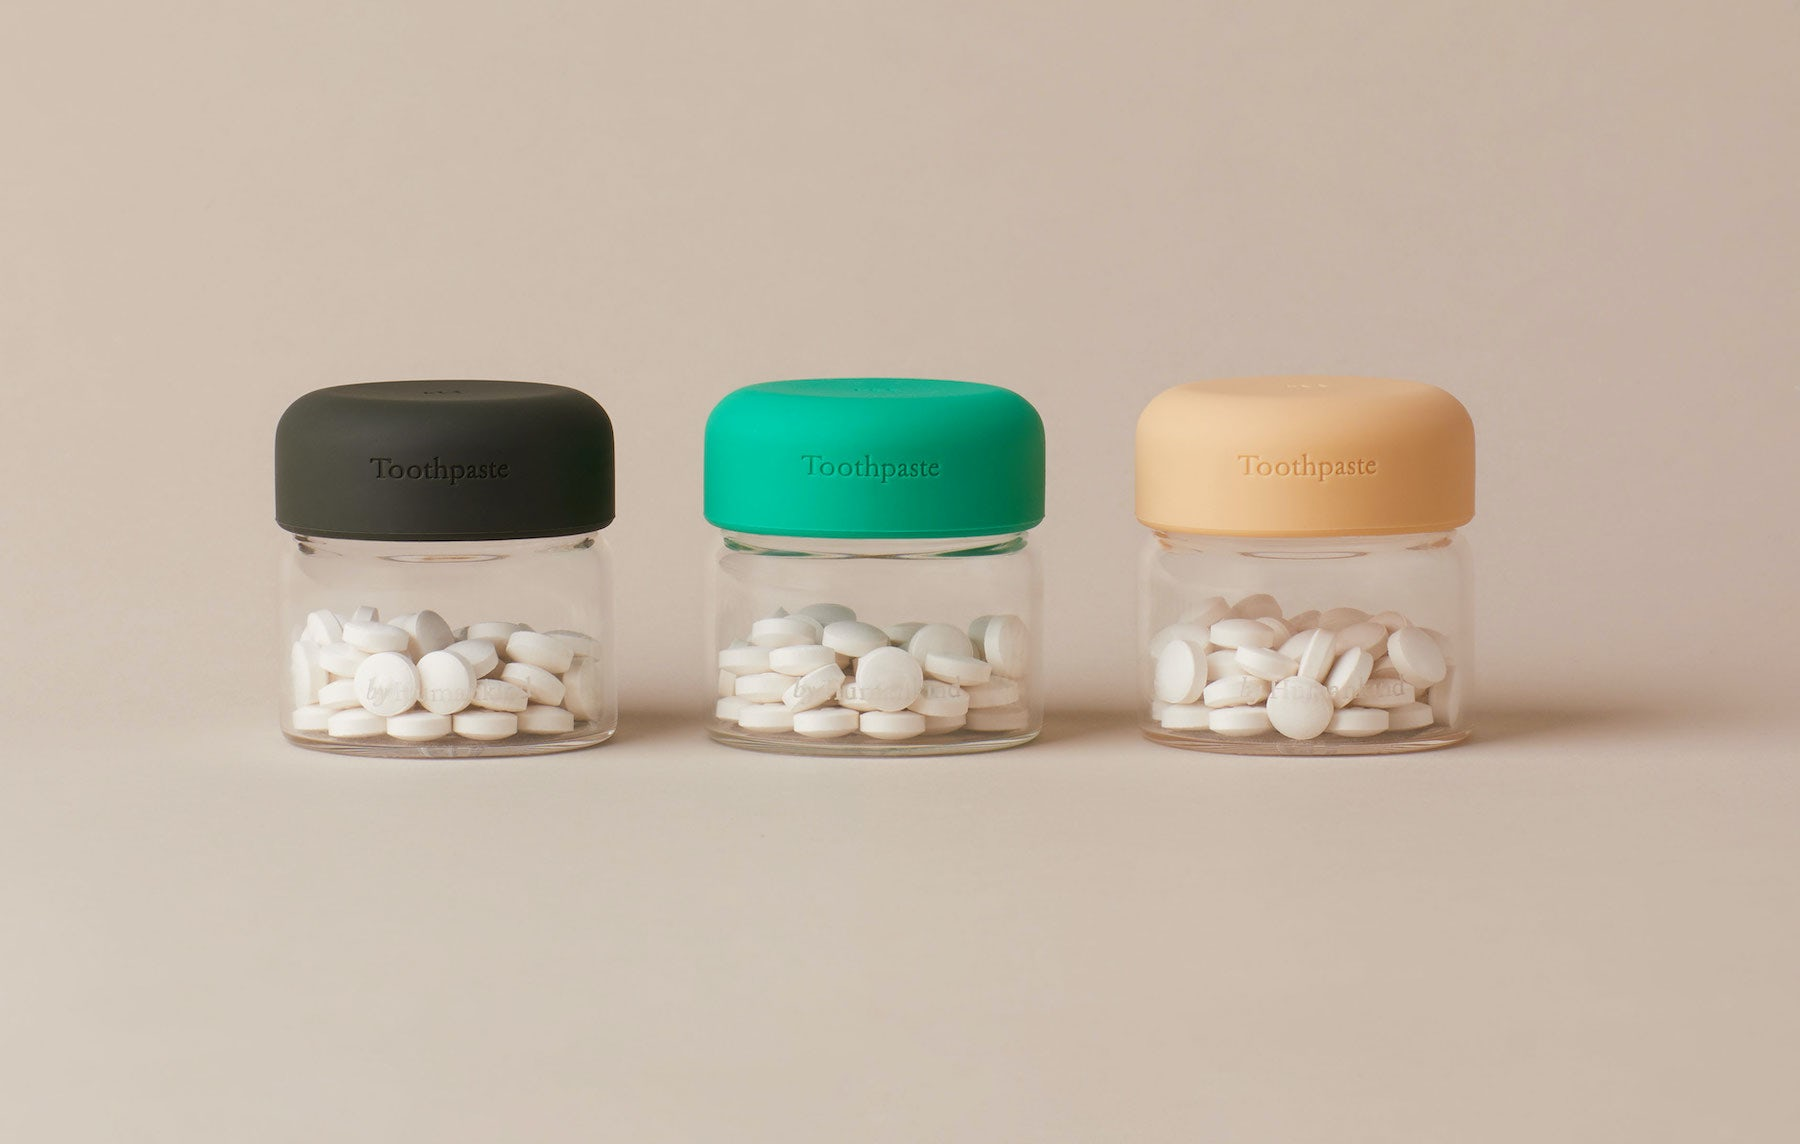 Toothpaste from the startup By Humankind comes in tablet form, and with reusable jars. By Humankind.